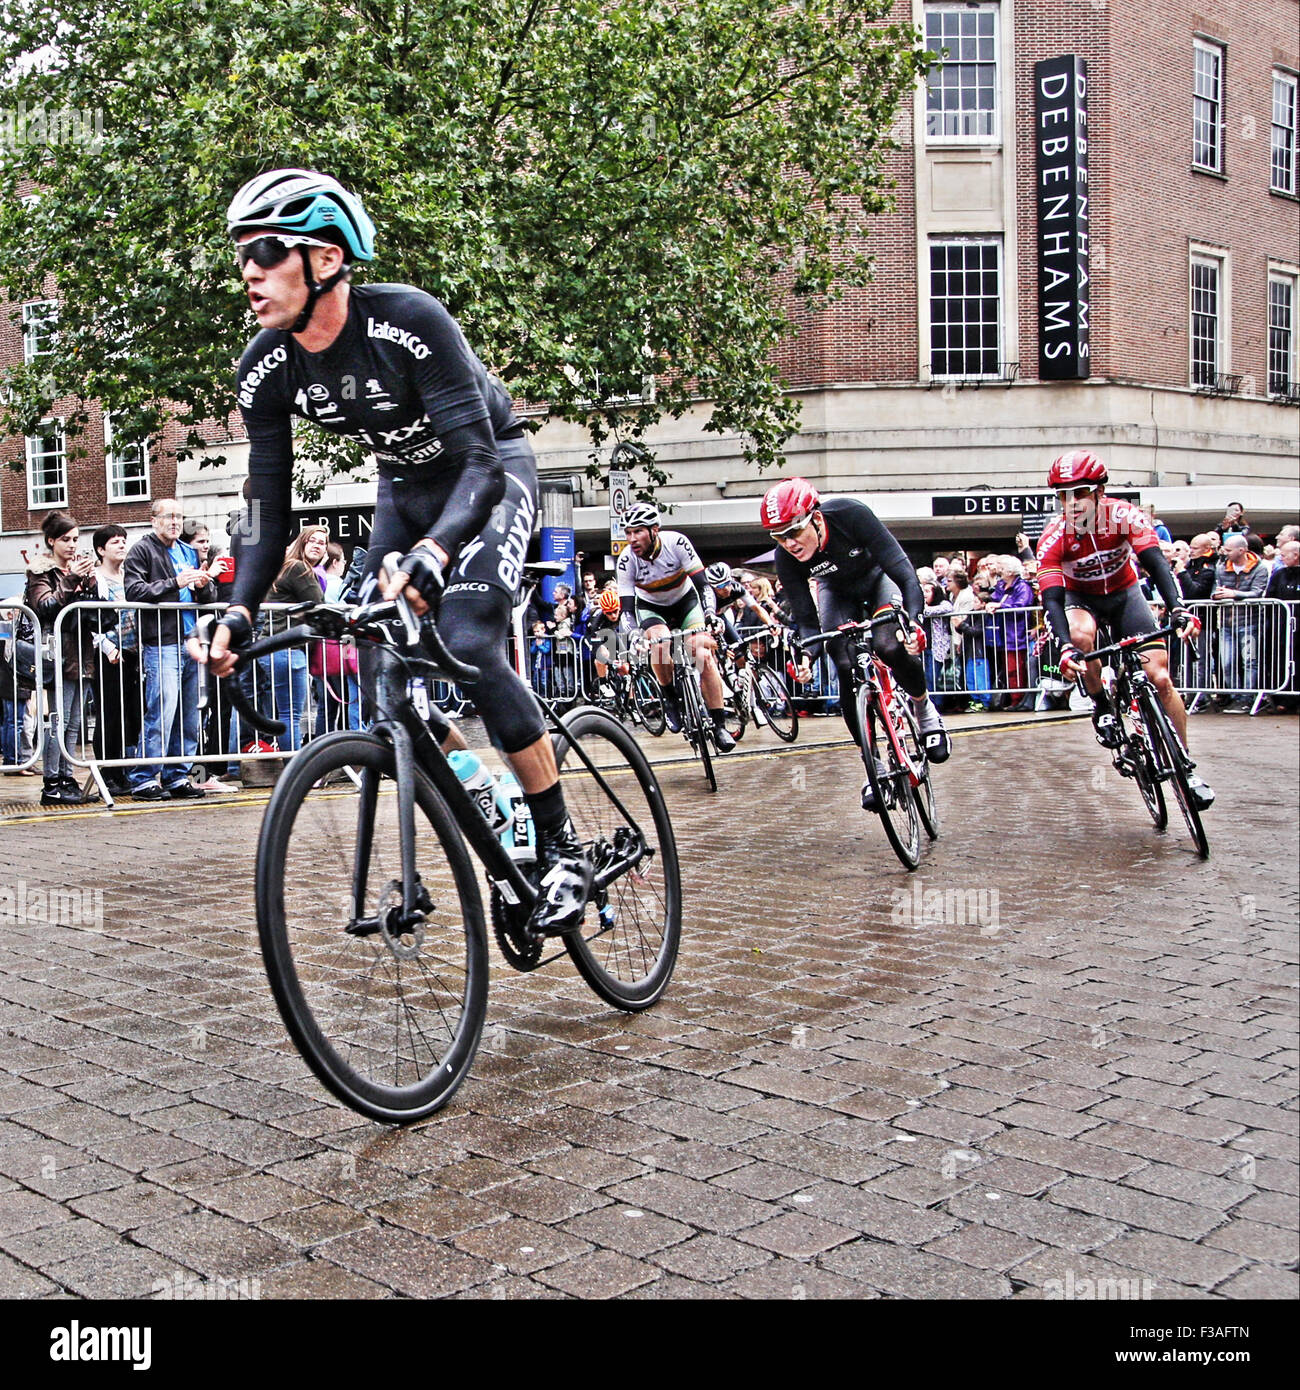 Cyclists on Tour of Britian cycle race through Norwich - Stock Image